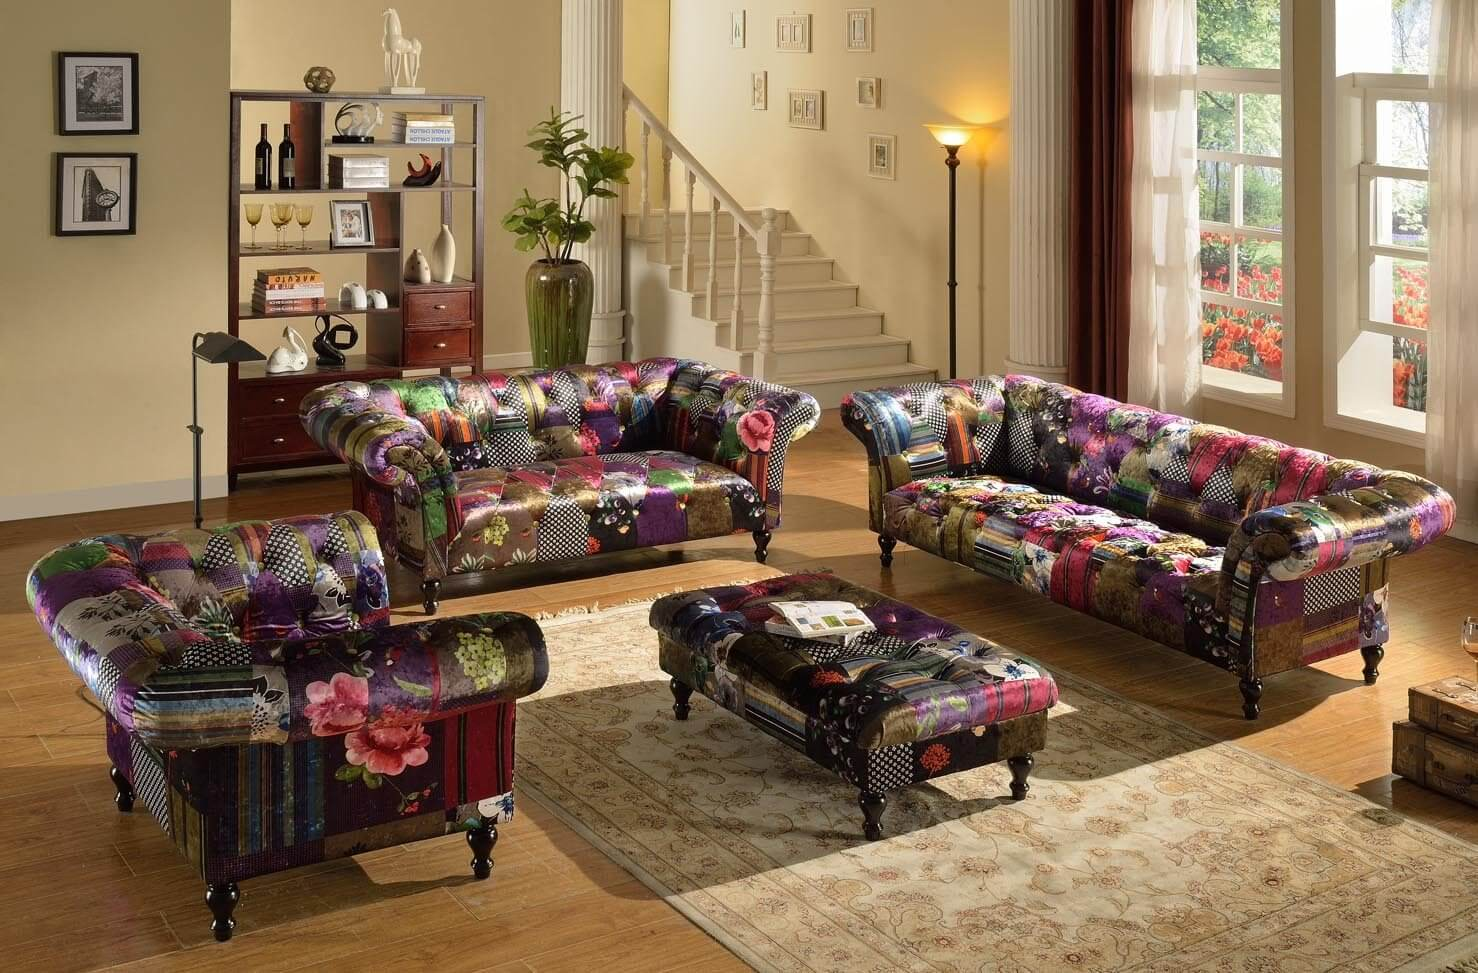 Anna Scroll Chesterfield 3 2 1 Luxury Fabric Patchwork Sofa Suite